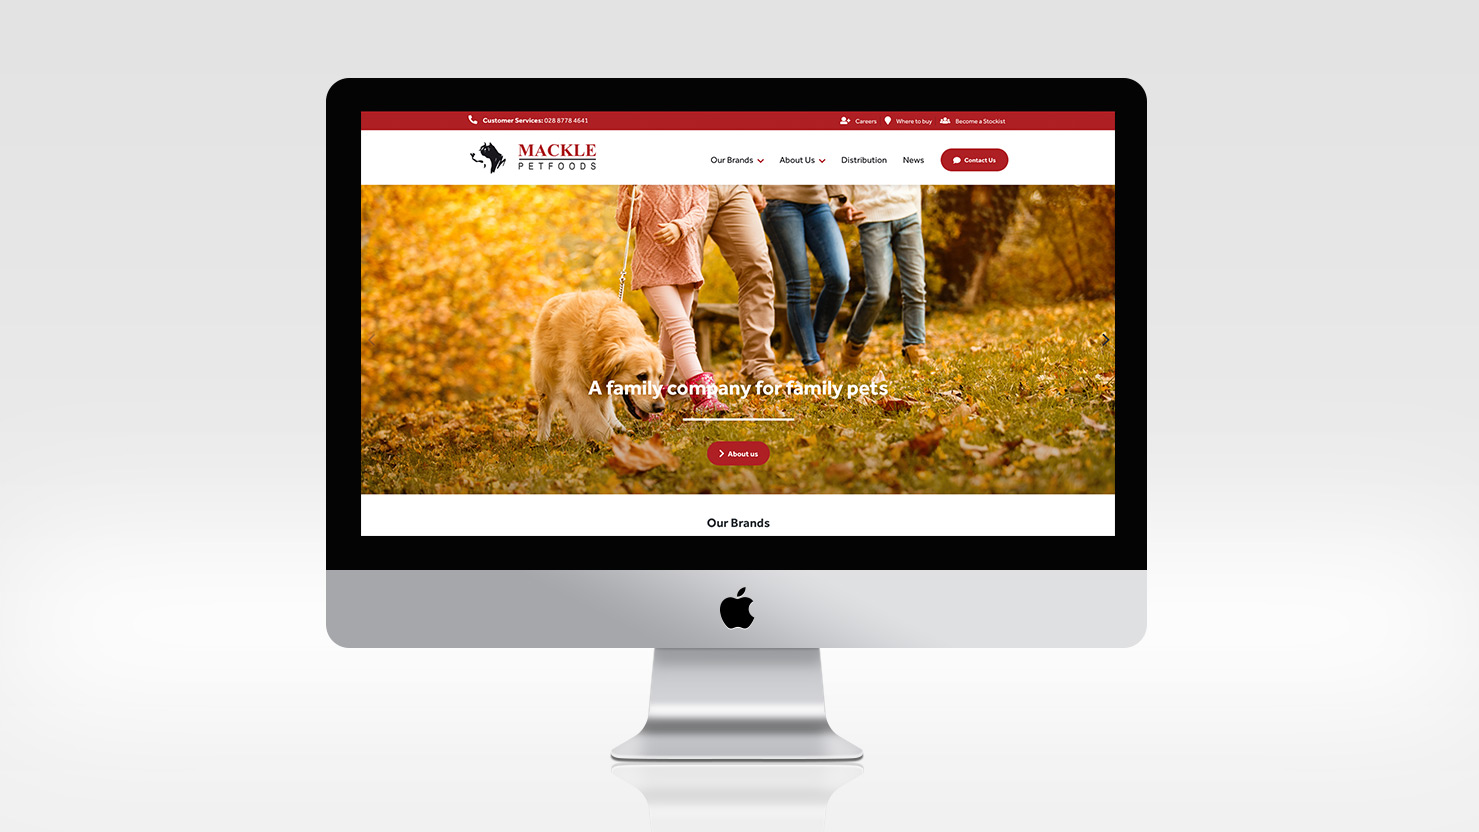 Mackle Pet Foods Website